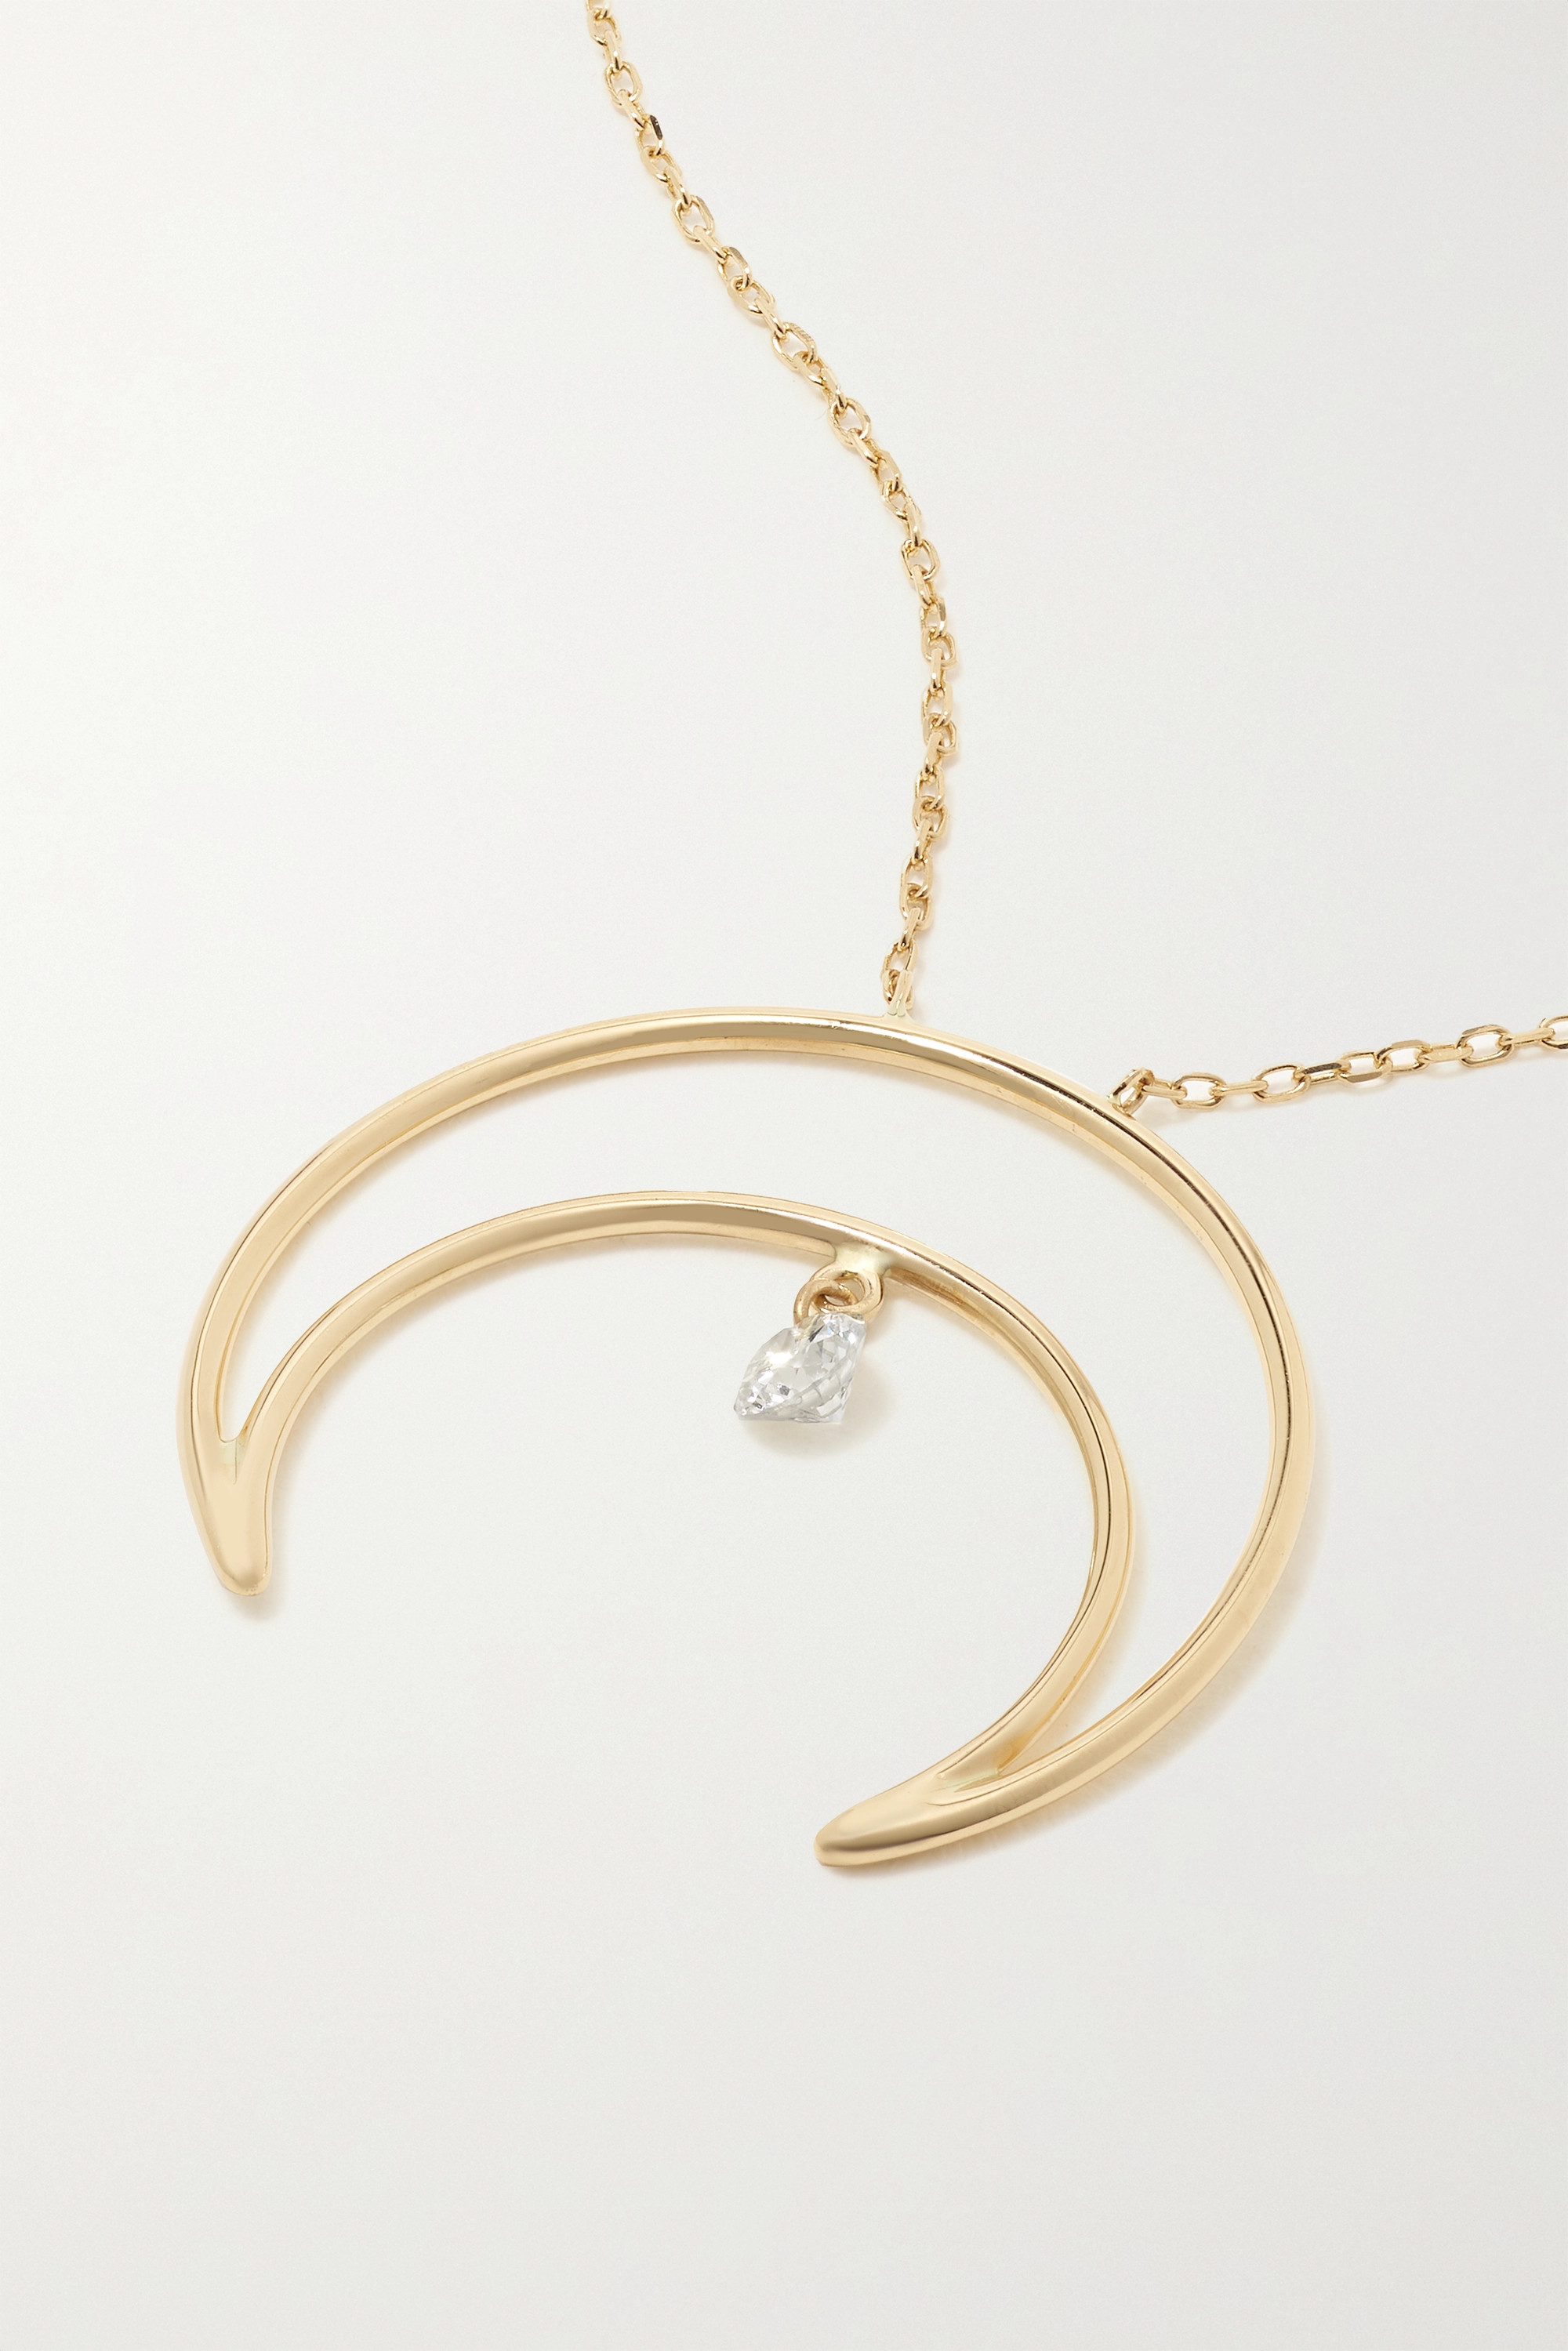 Persée Fly Me To The Moon 18-karat gold diamond necklace